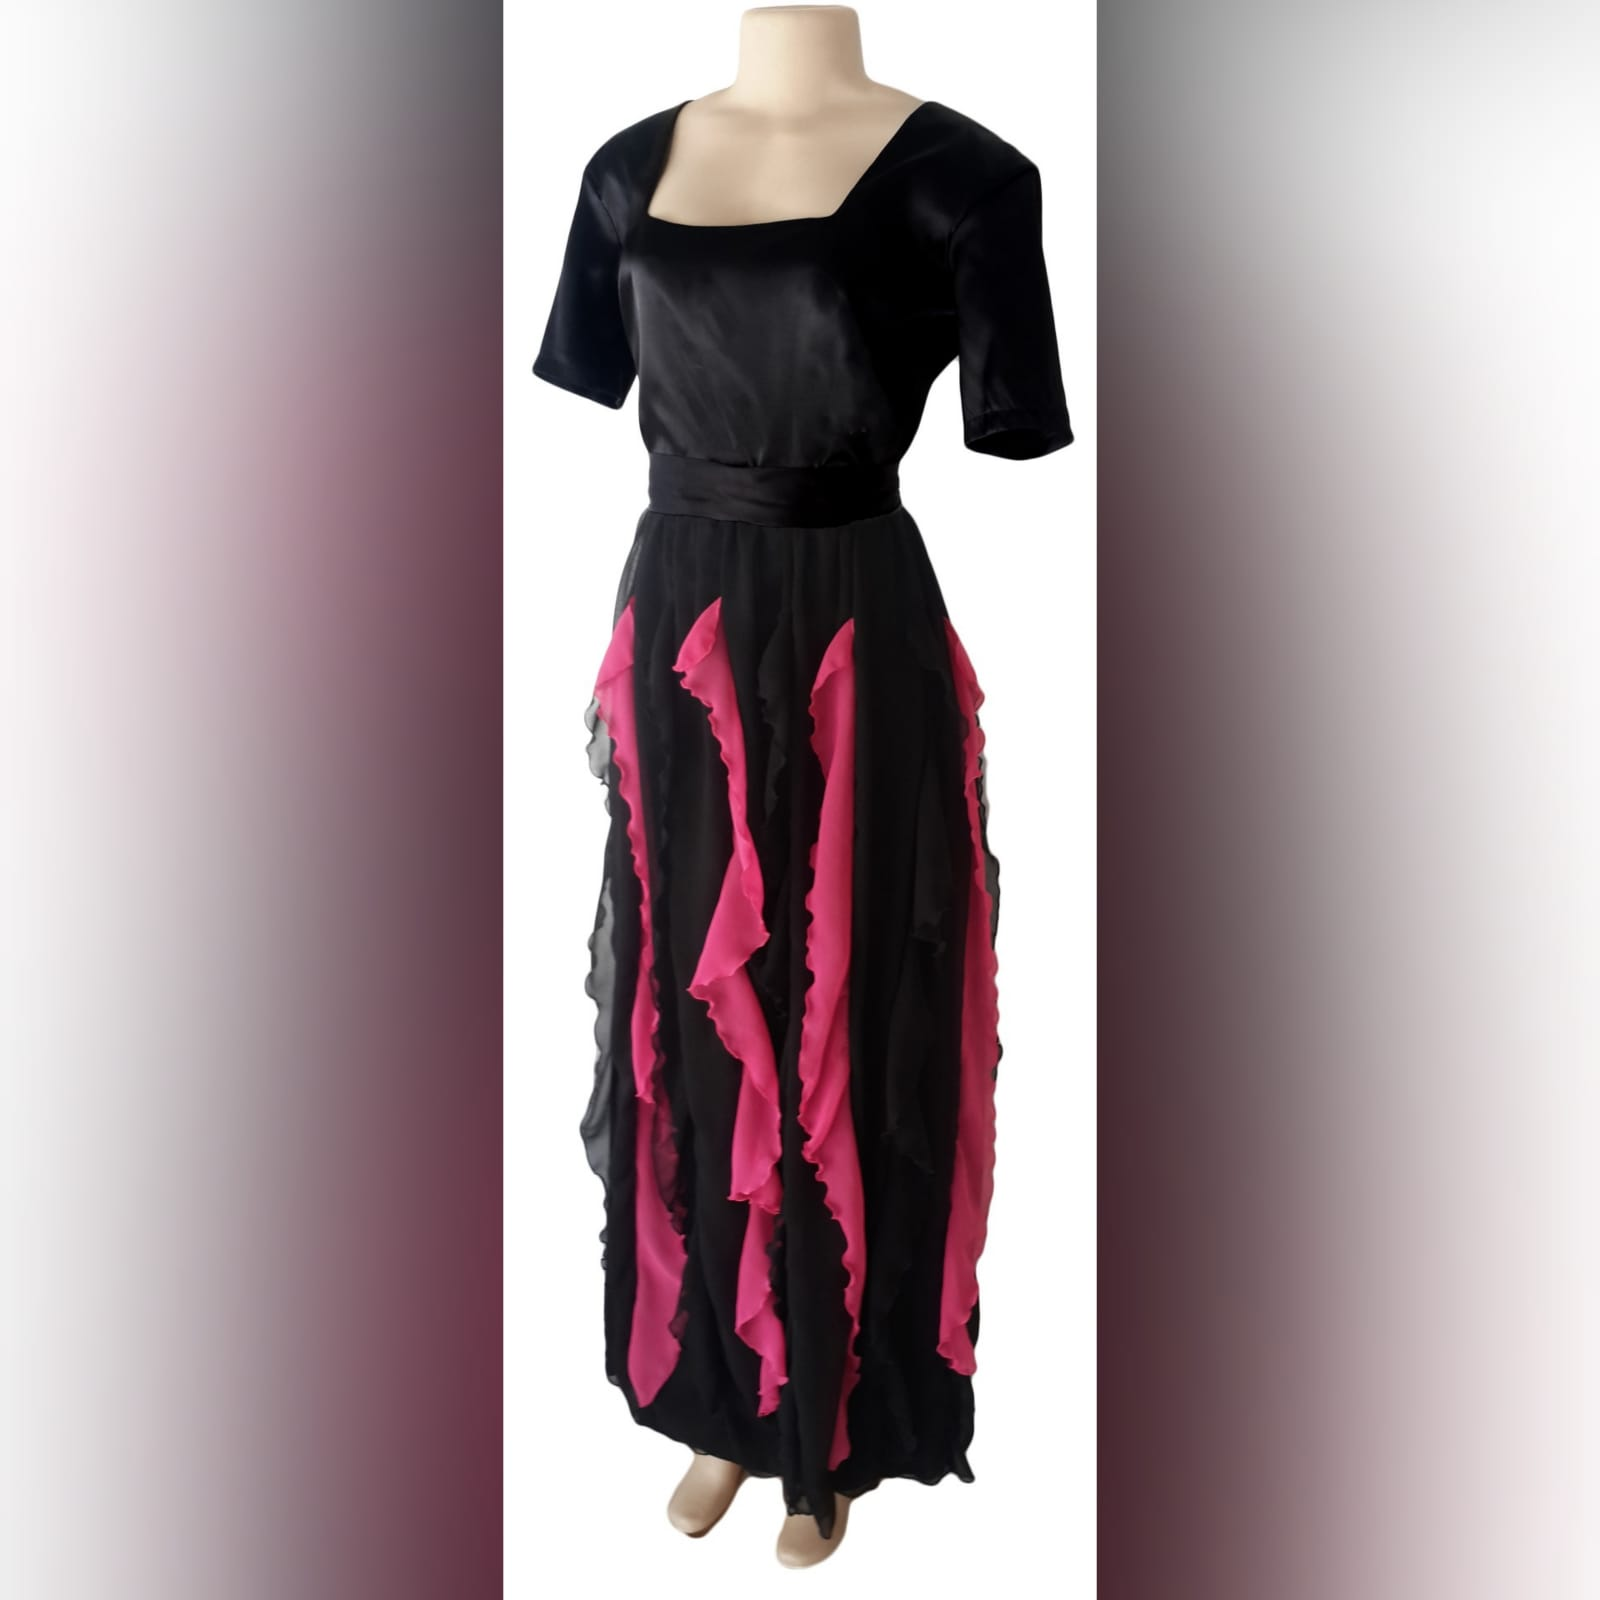 Black and pink evening dress 2 black & pink evening dress with square neckline short sleeves & vertical pink and black frills